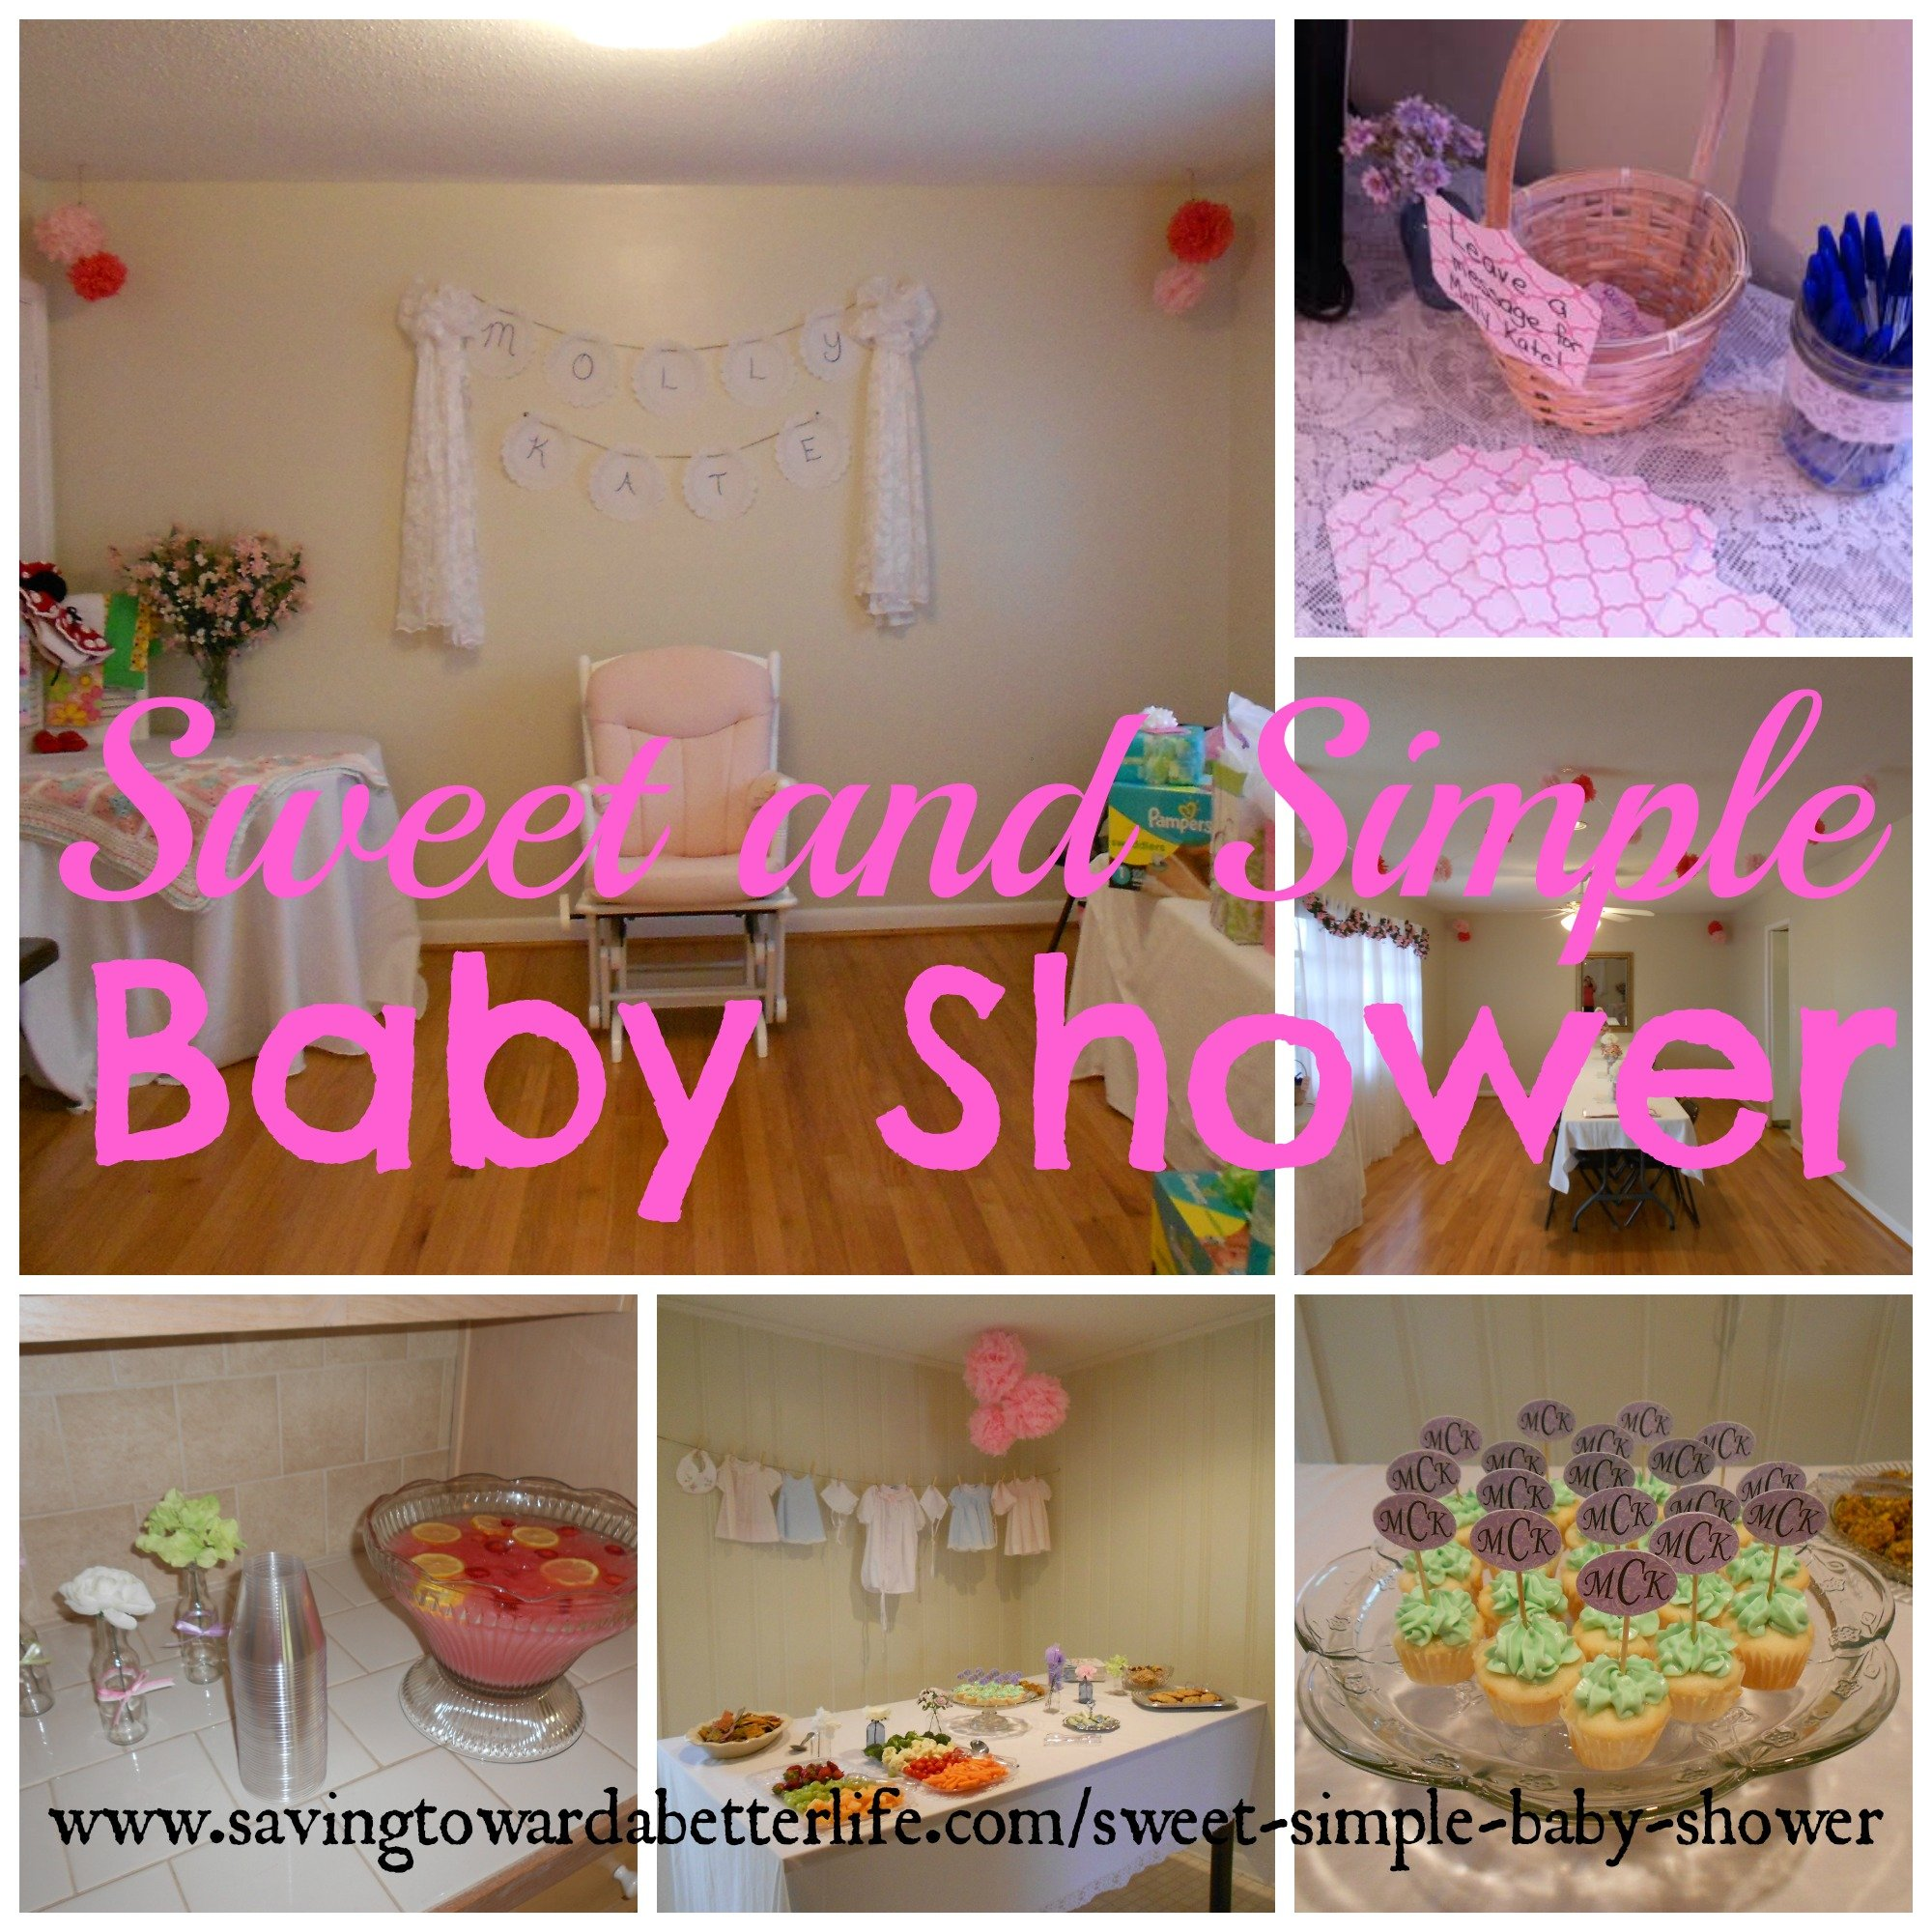 Sweet and Simple Baby Shower Ideas